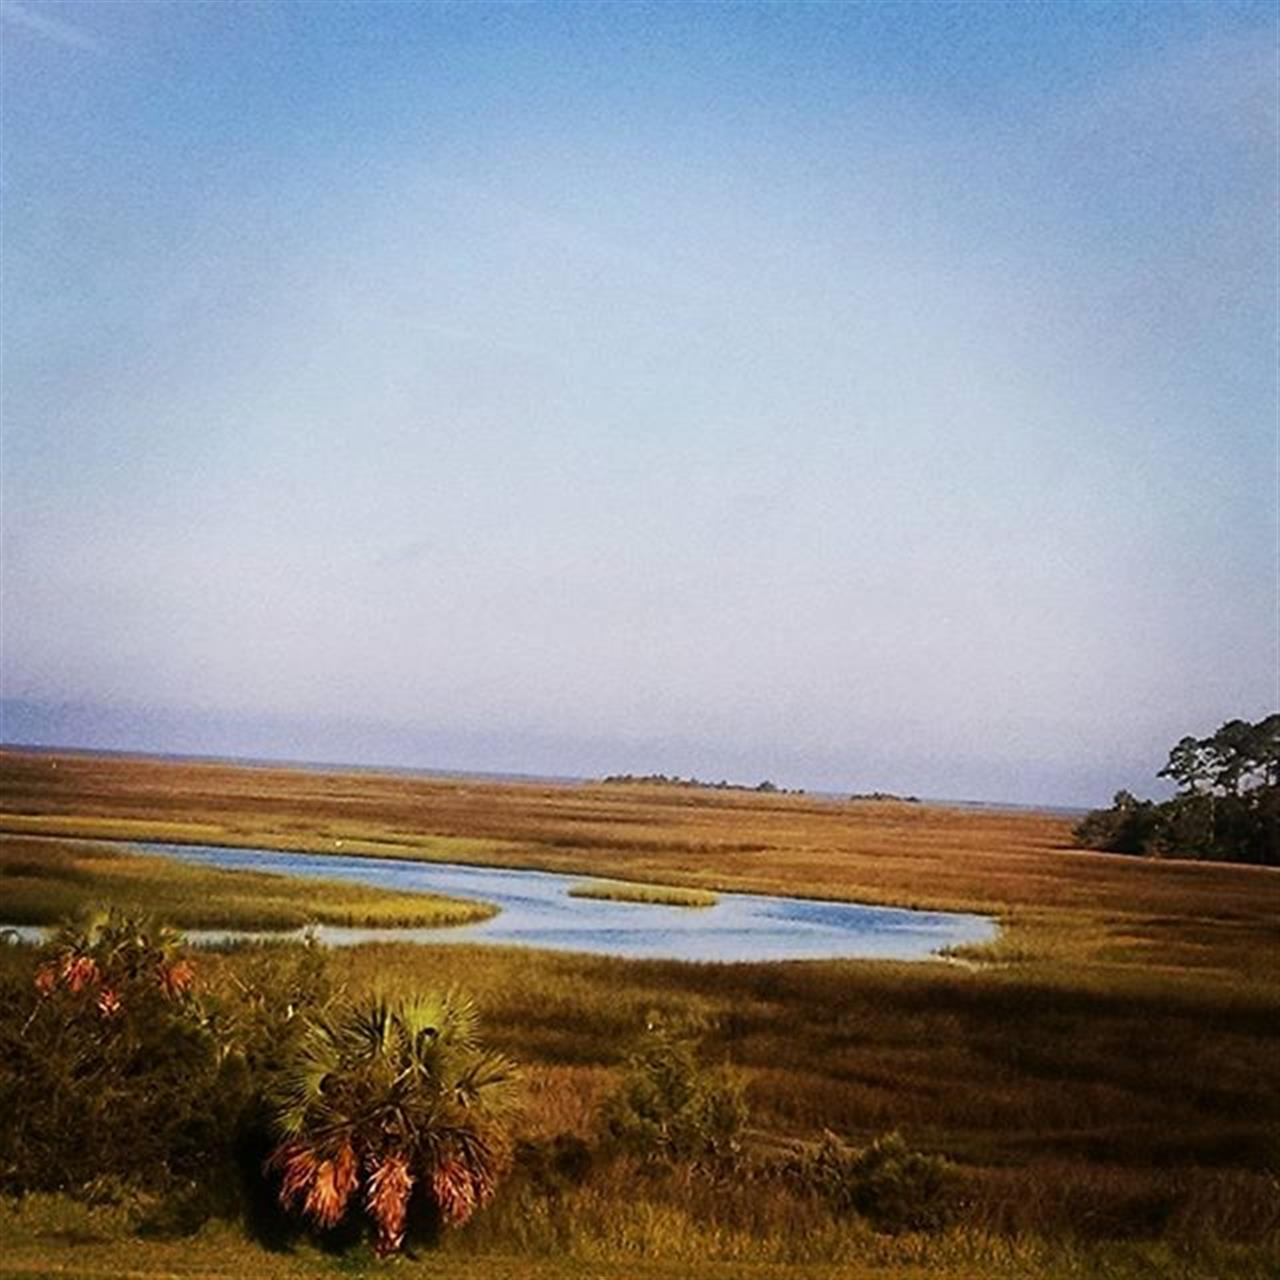 My beautiful view this morning!!! The Gulf is on the other side of the Marsh!!